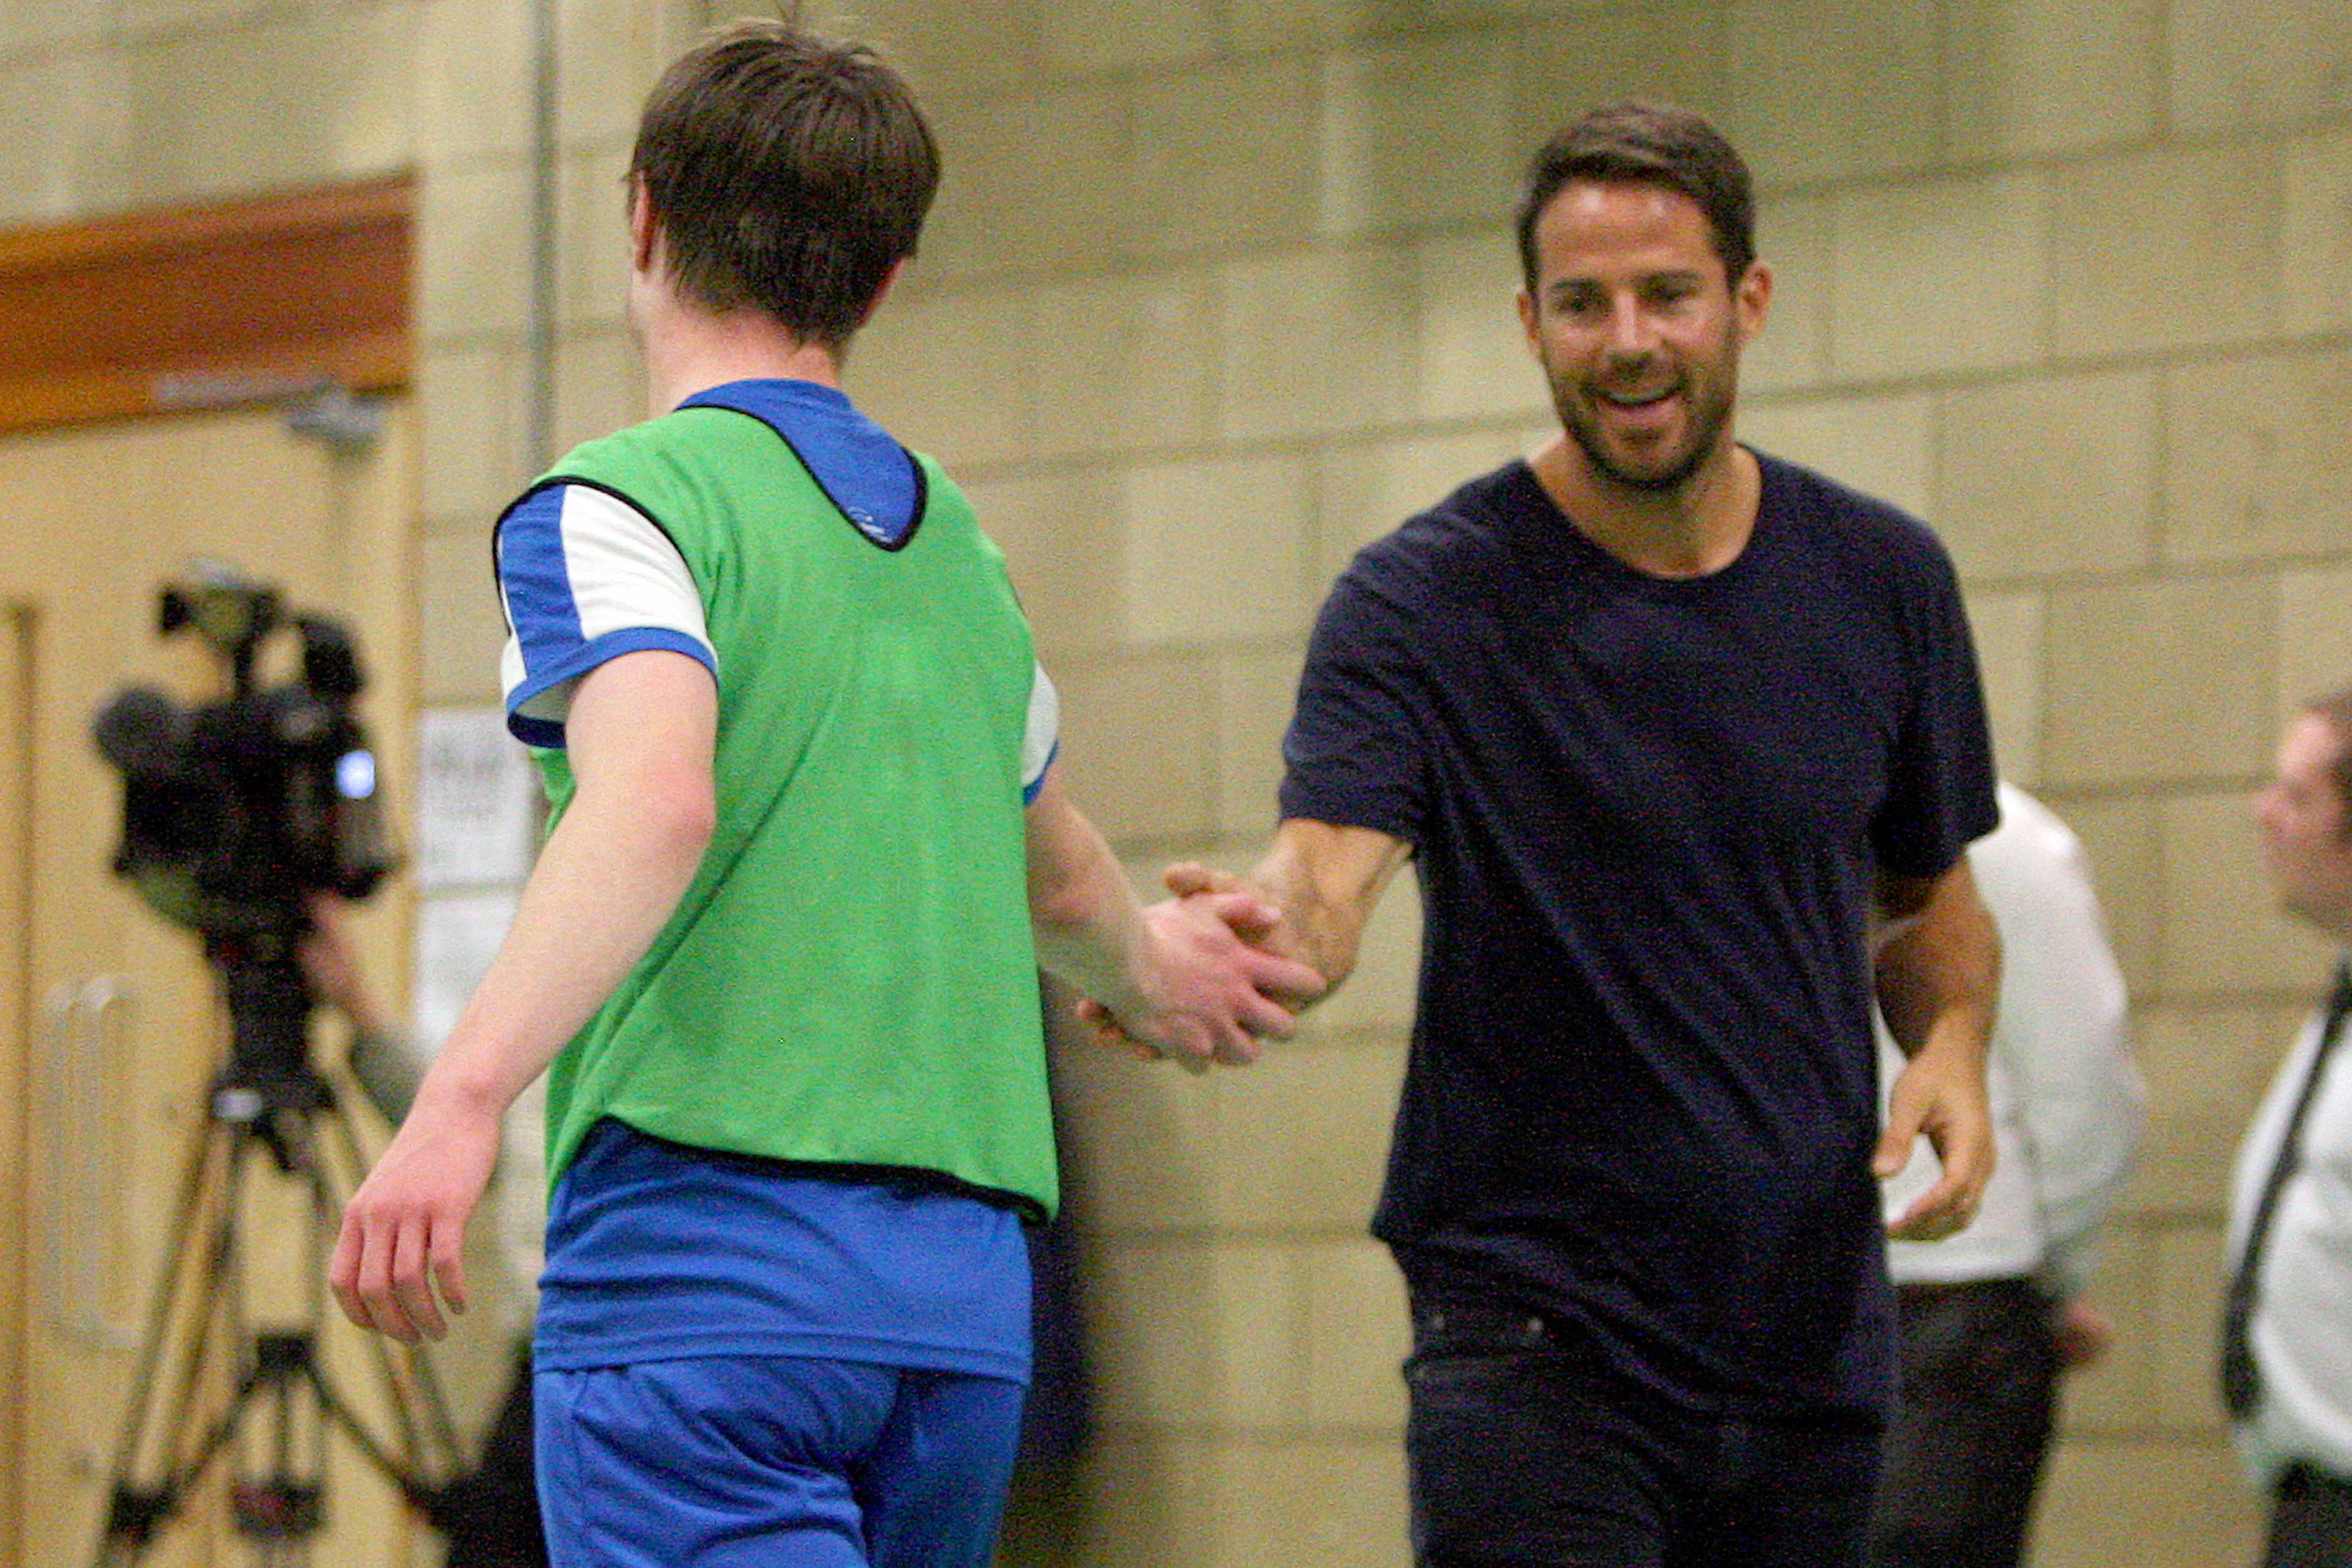 Jamie Redknapp drops in to St John's in Dundee for an impromptu training session